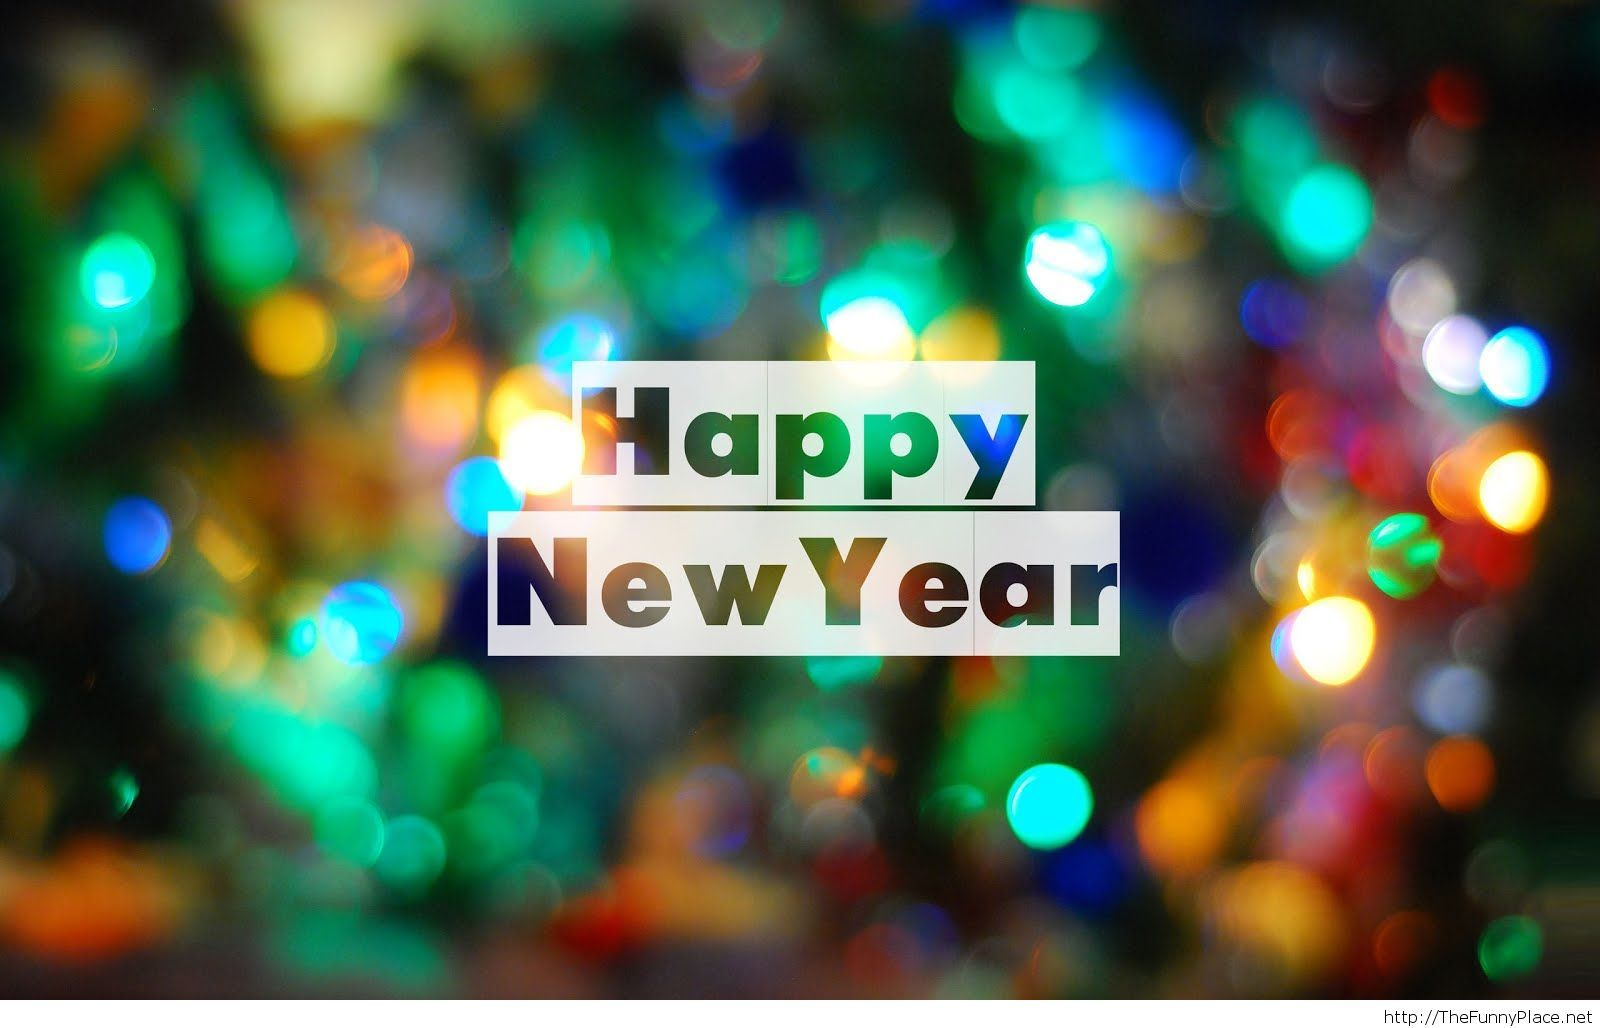 3d-happy-new-year-2014-wallpaper-17146-hd-widescreen-wallpapers